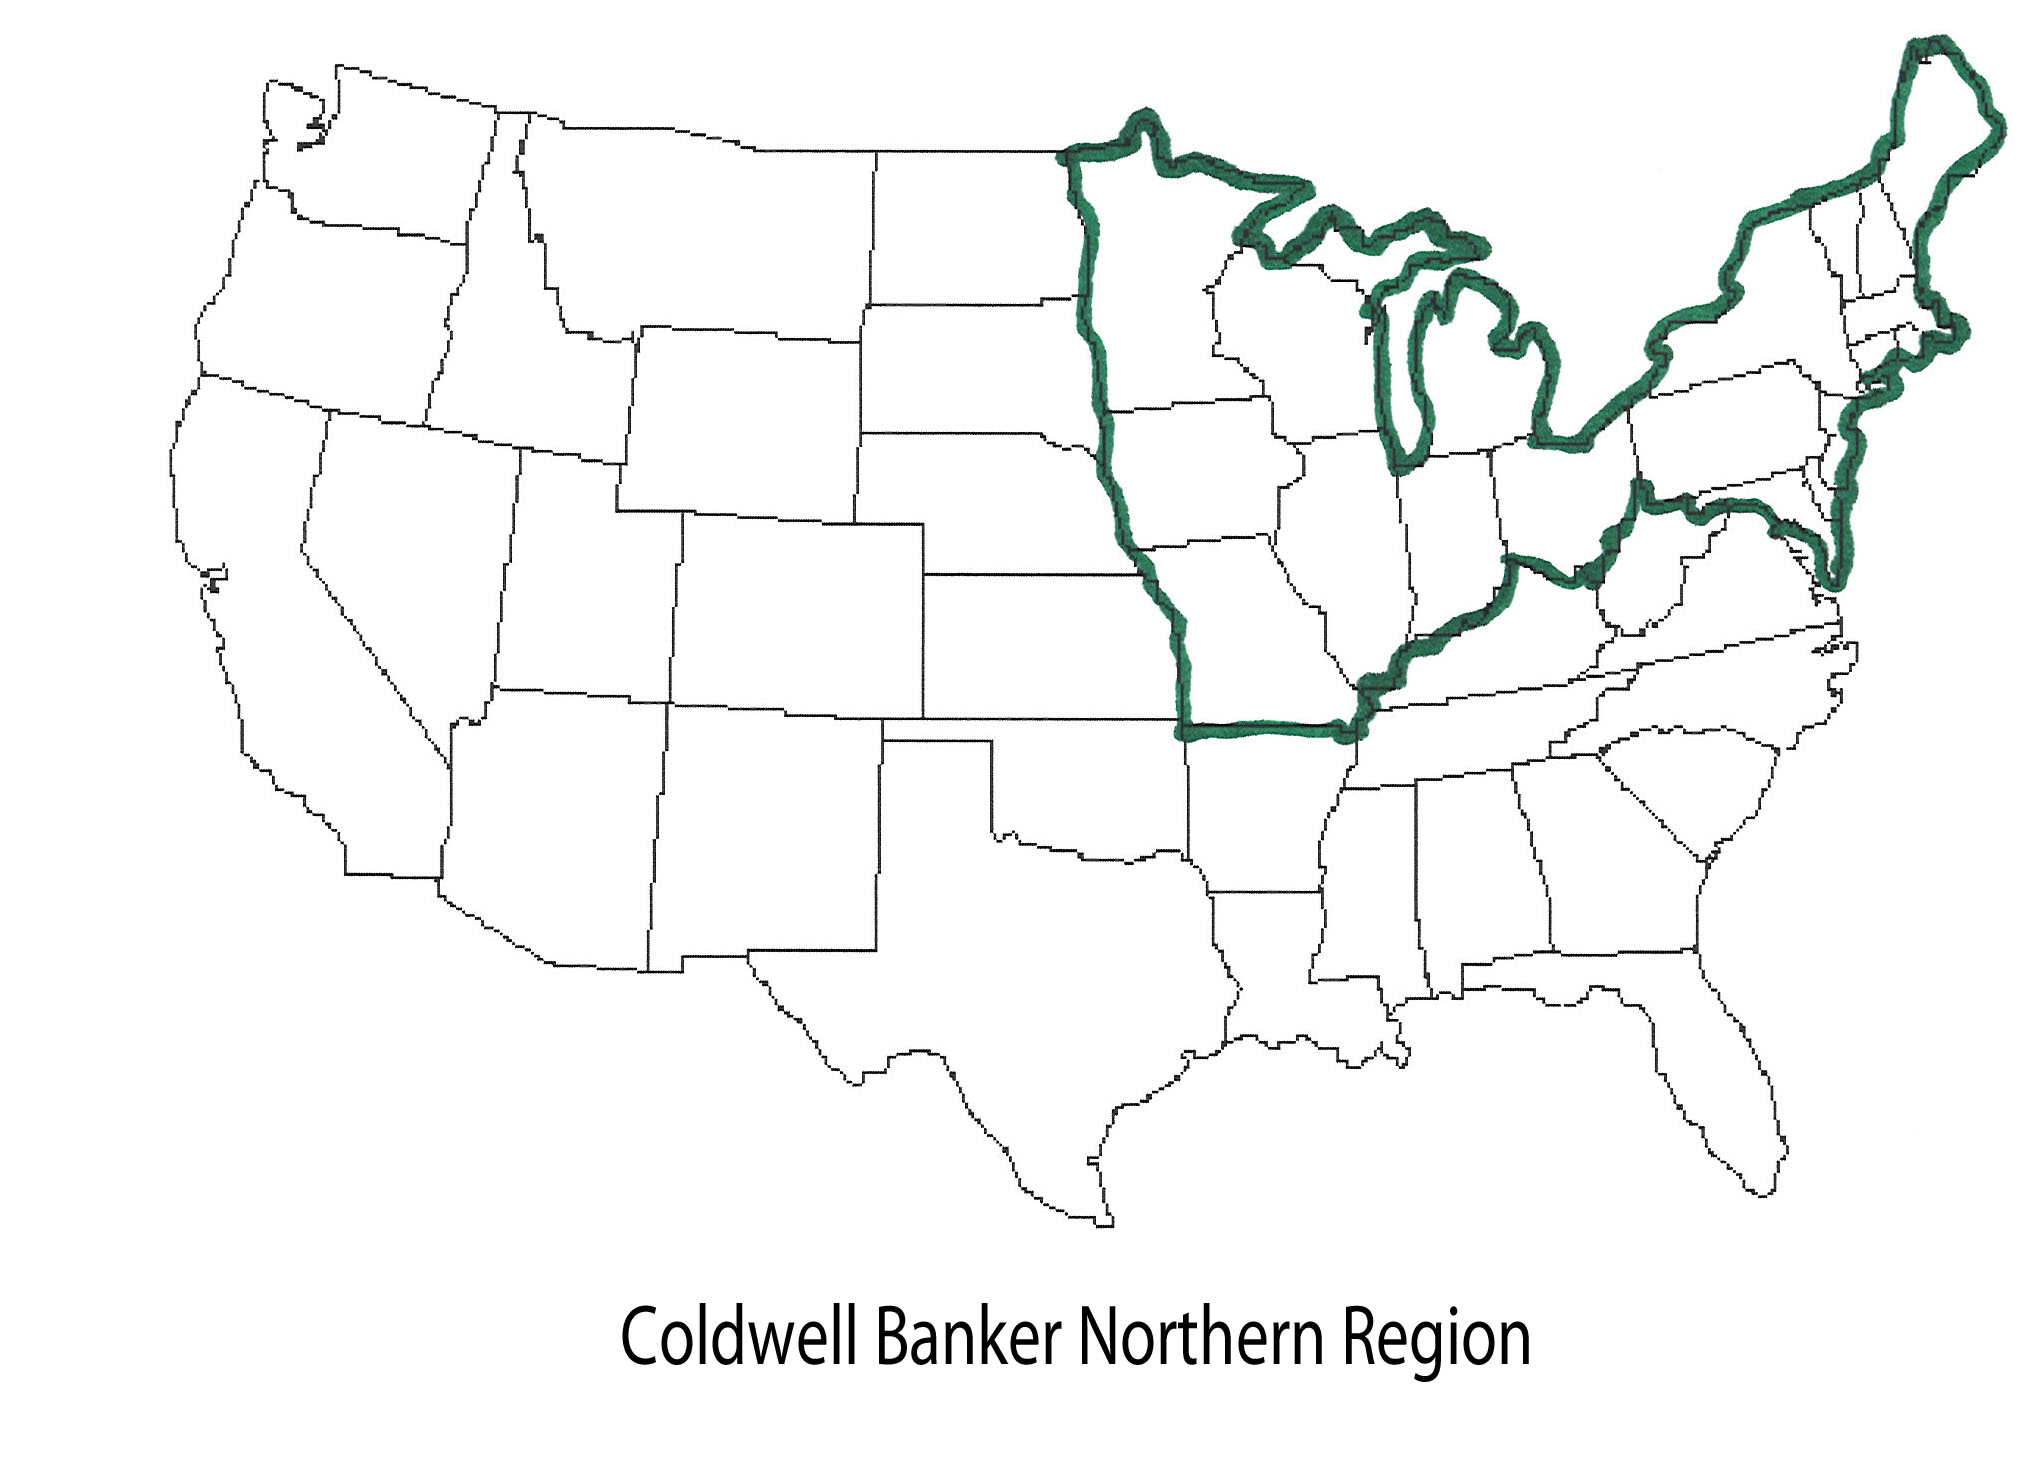 Coldwell Banker Northern Region